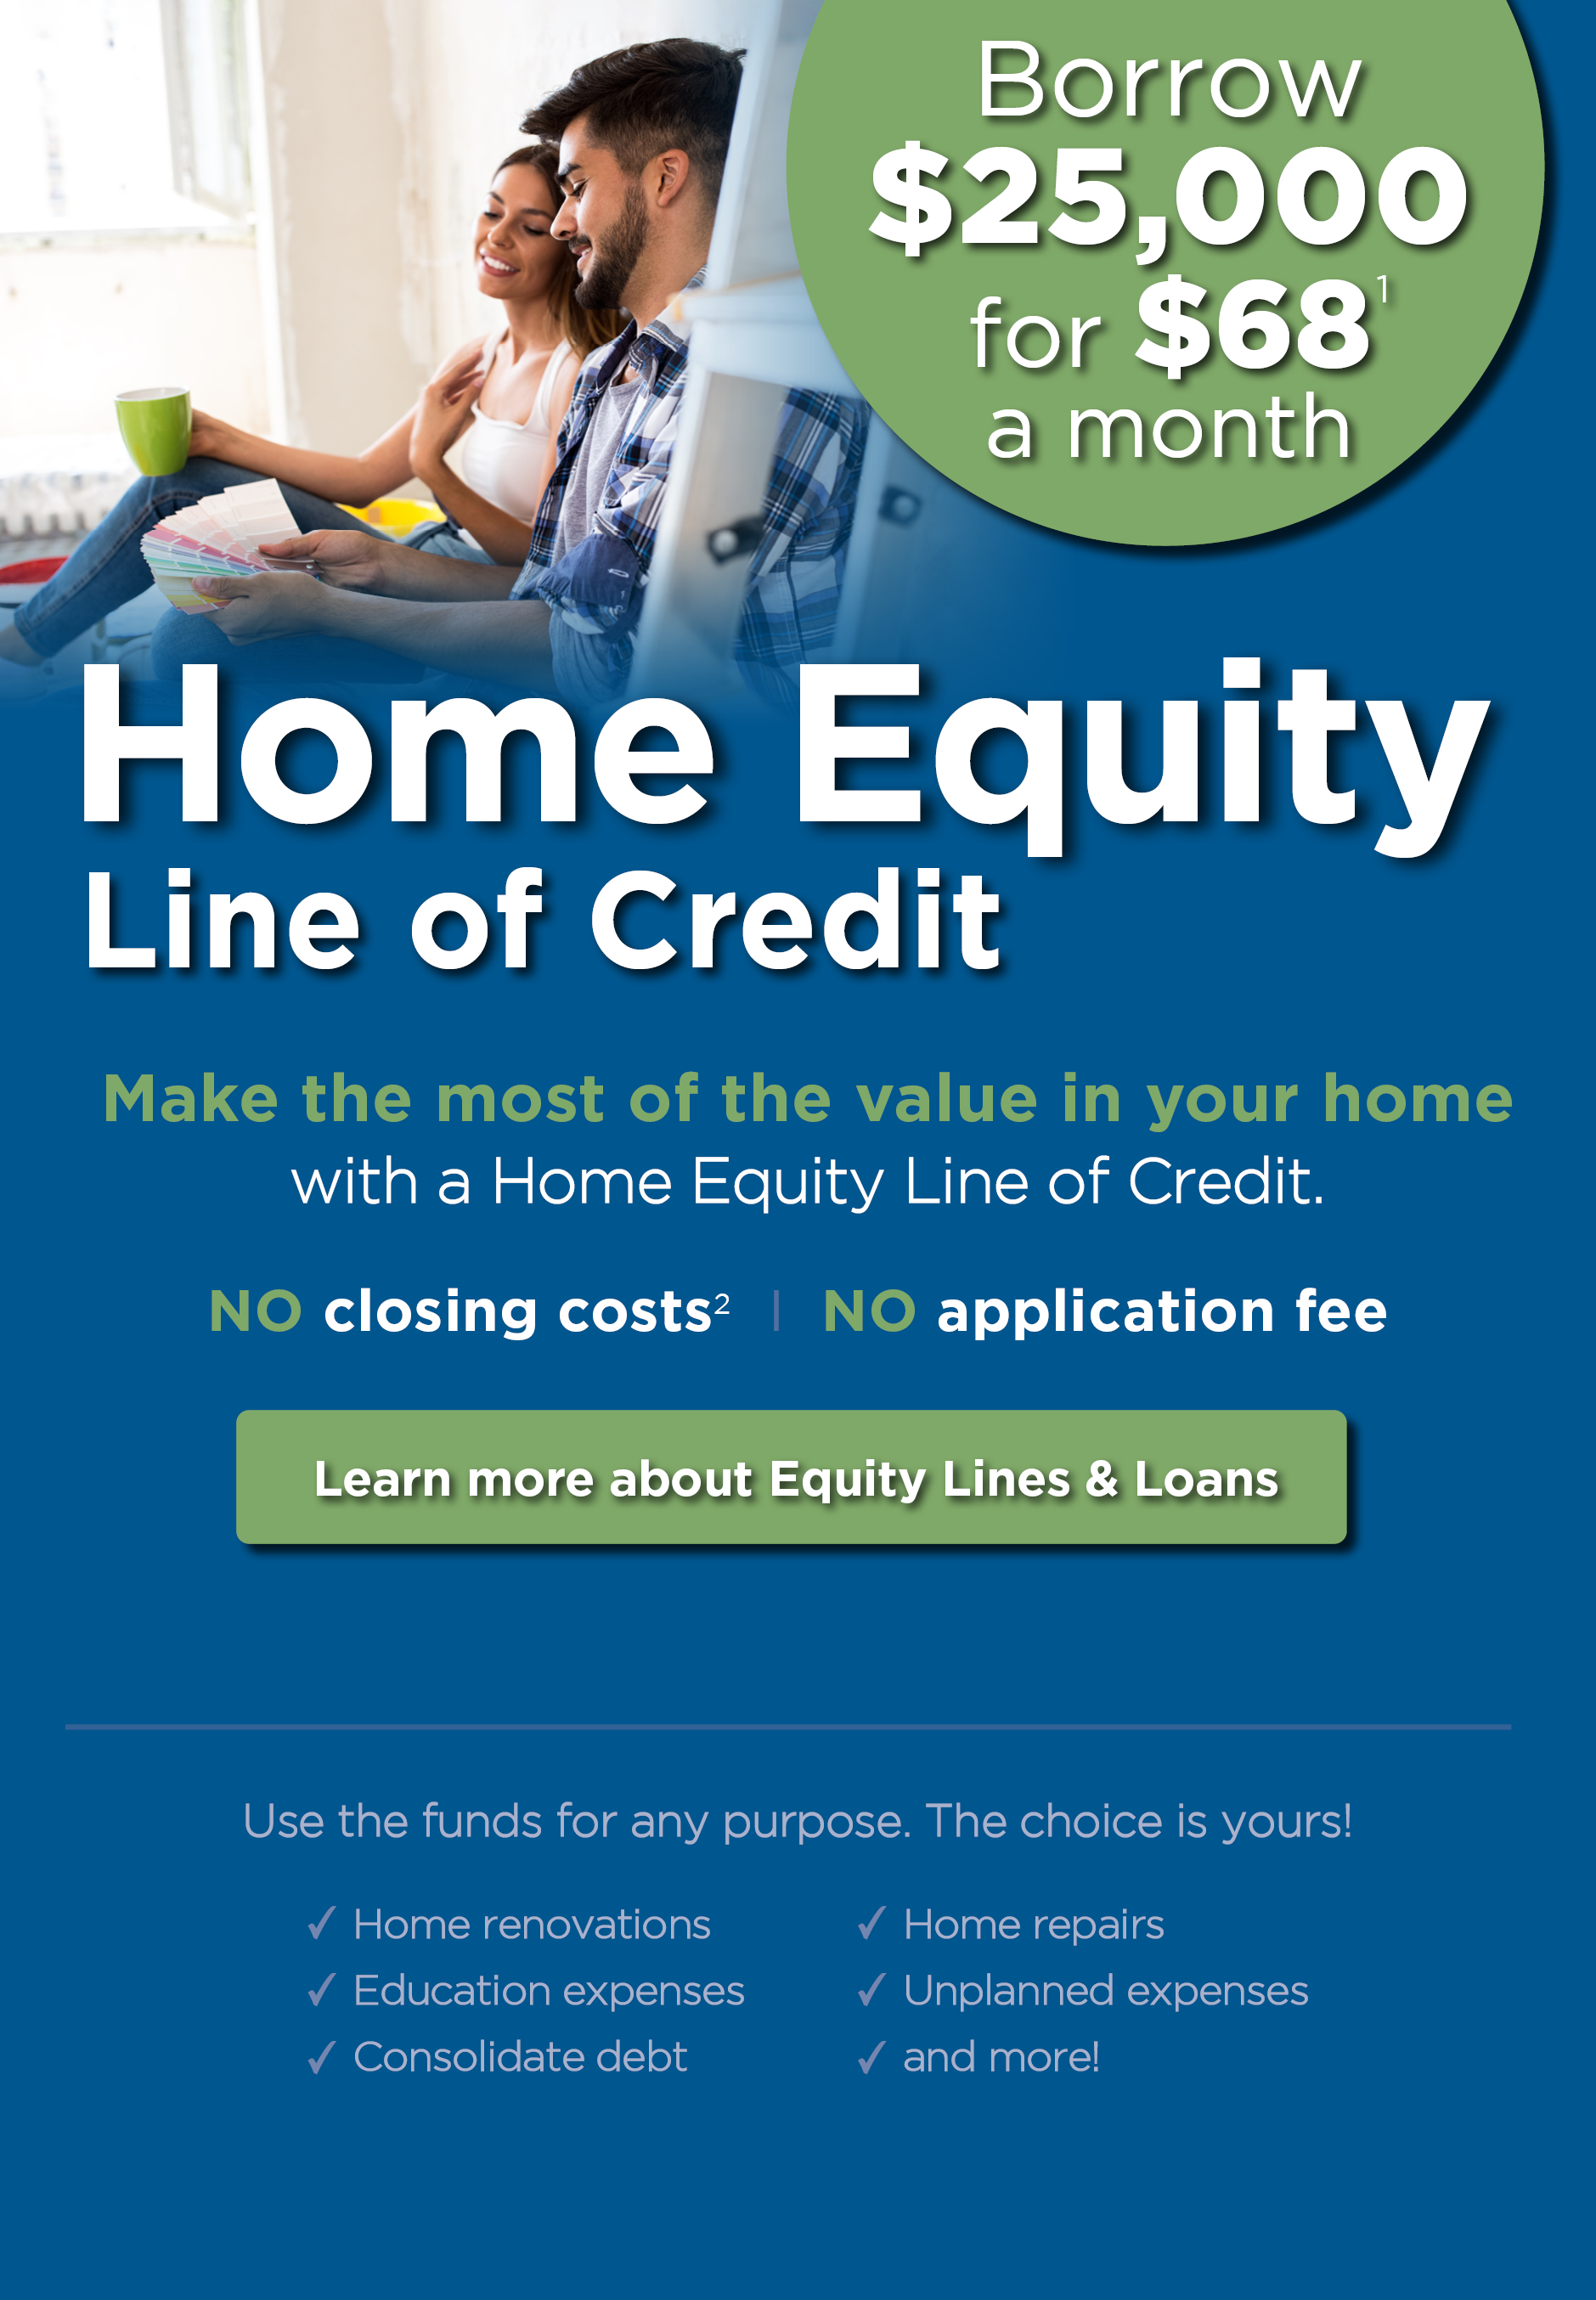 Home Equity Line of Credit. Borrow $25,000 for $68 a month. Disclosure 1 below. Make the most of the value in your home with a Home Equity Line of Credit. Plus, NO closing costs. Disclosure 2 below. NO application fee. Learn more about Equity Lines & Loans. Use the funds for any purpose. The choice is yours! Home renovations, education expenses, consolidate debt, home repairs, unplanned expenses and more!